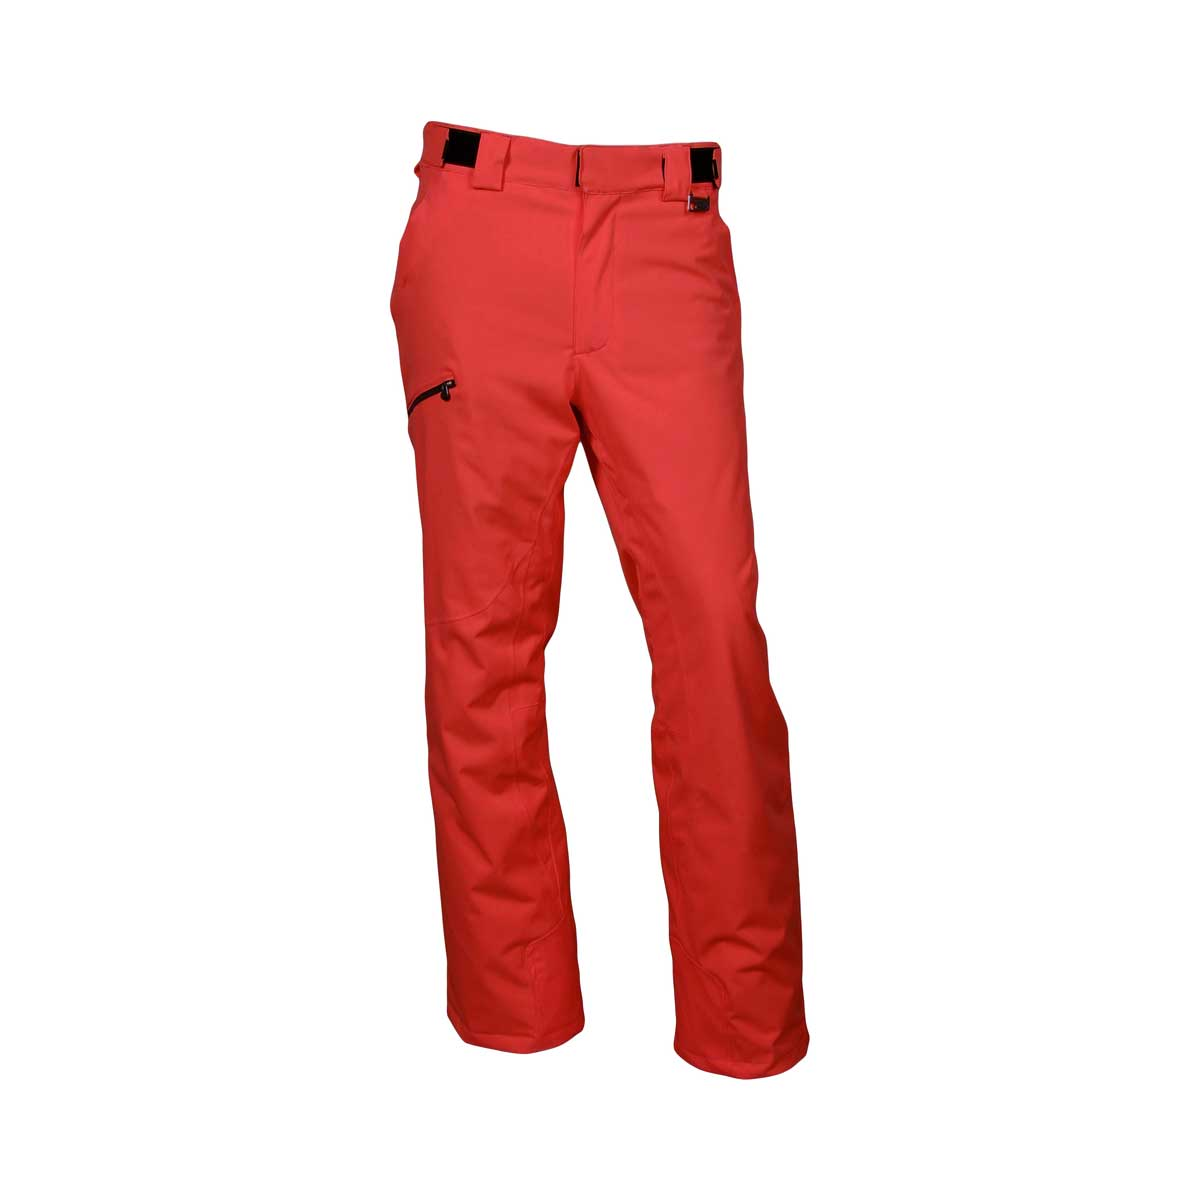 Karbon Mens' Silver Trim Fit Short Pant in Red